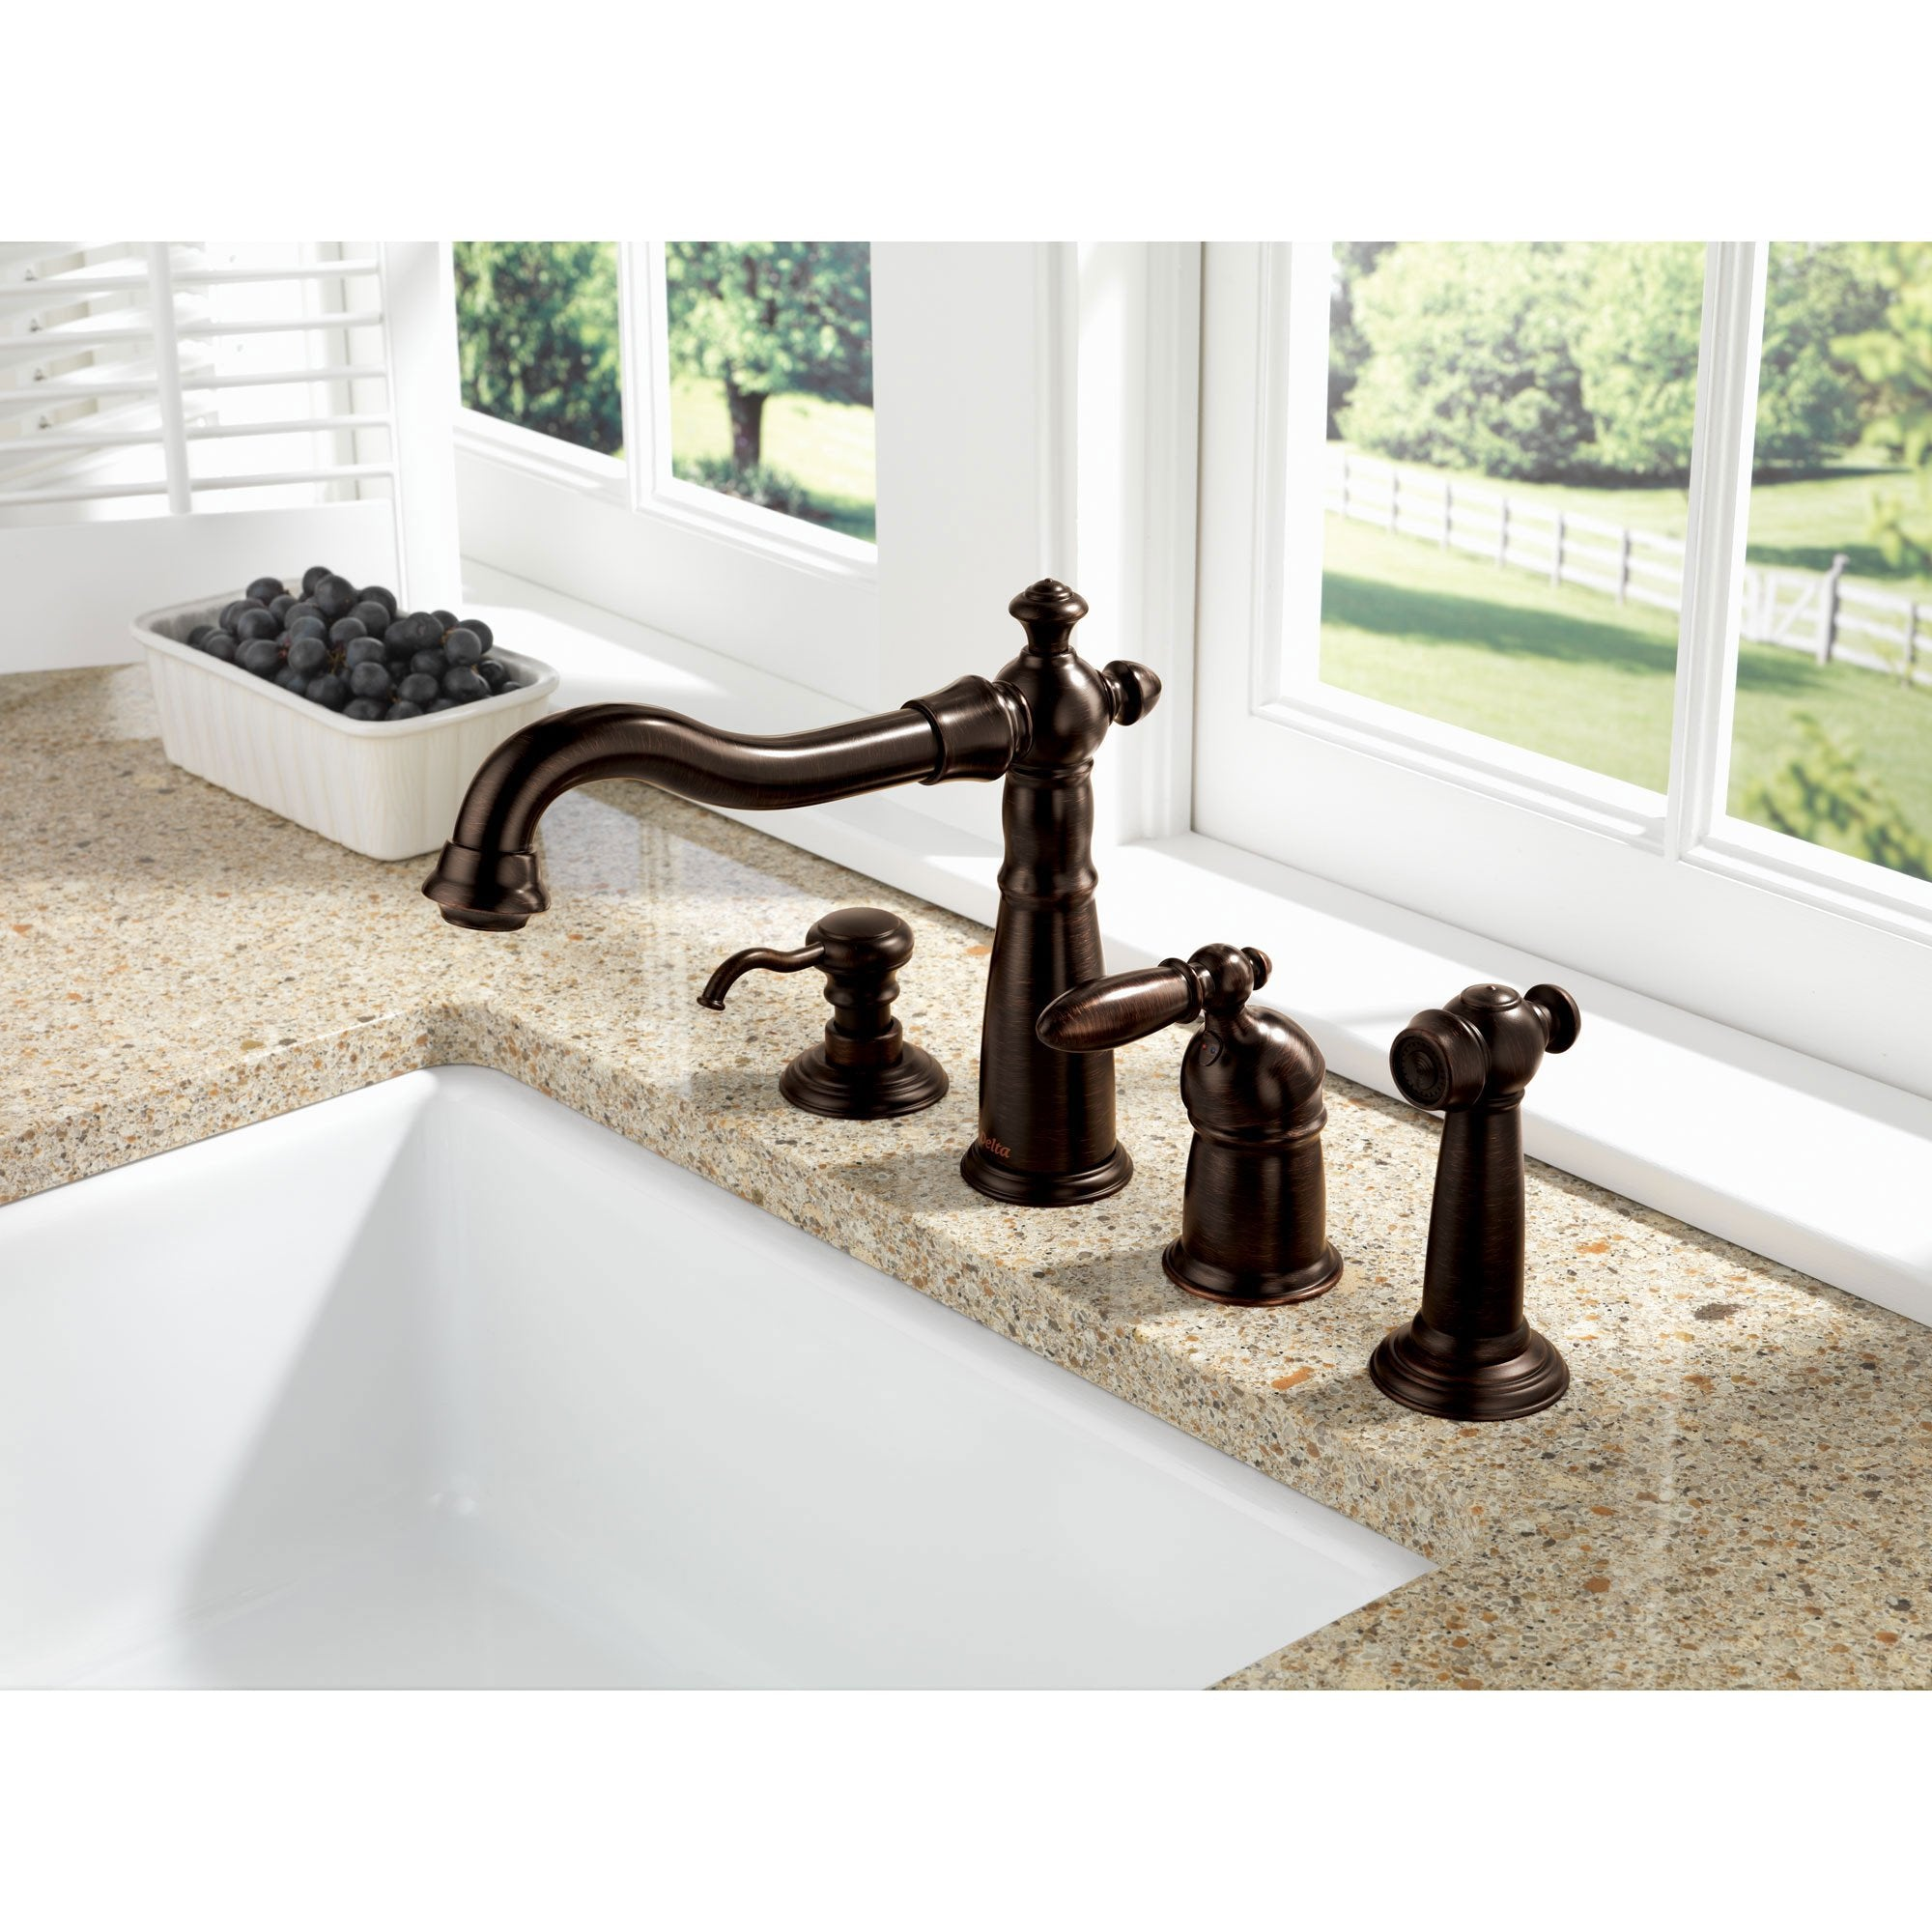 Delta Venetian Bronze Finish Victorian Collection Single Handle Kitchen Faucet with Sidespray and Deck Mount Soap Dispenser Package D002CR